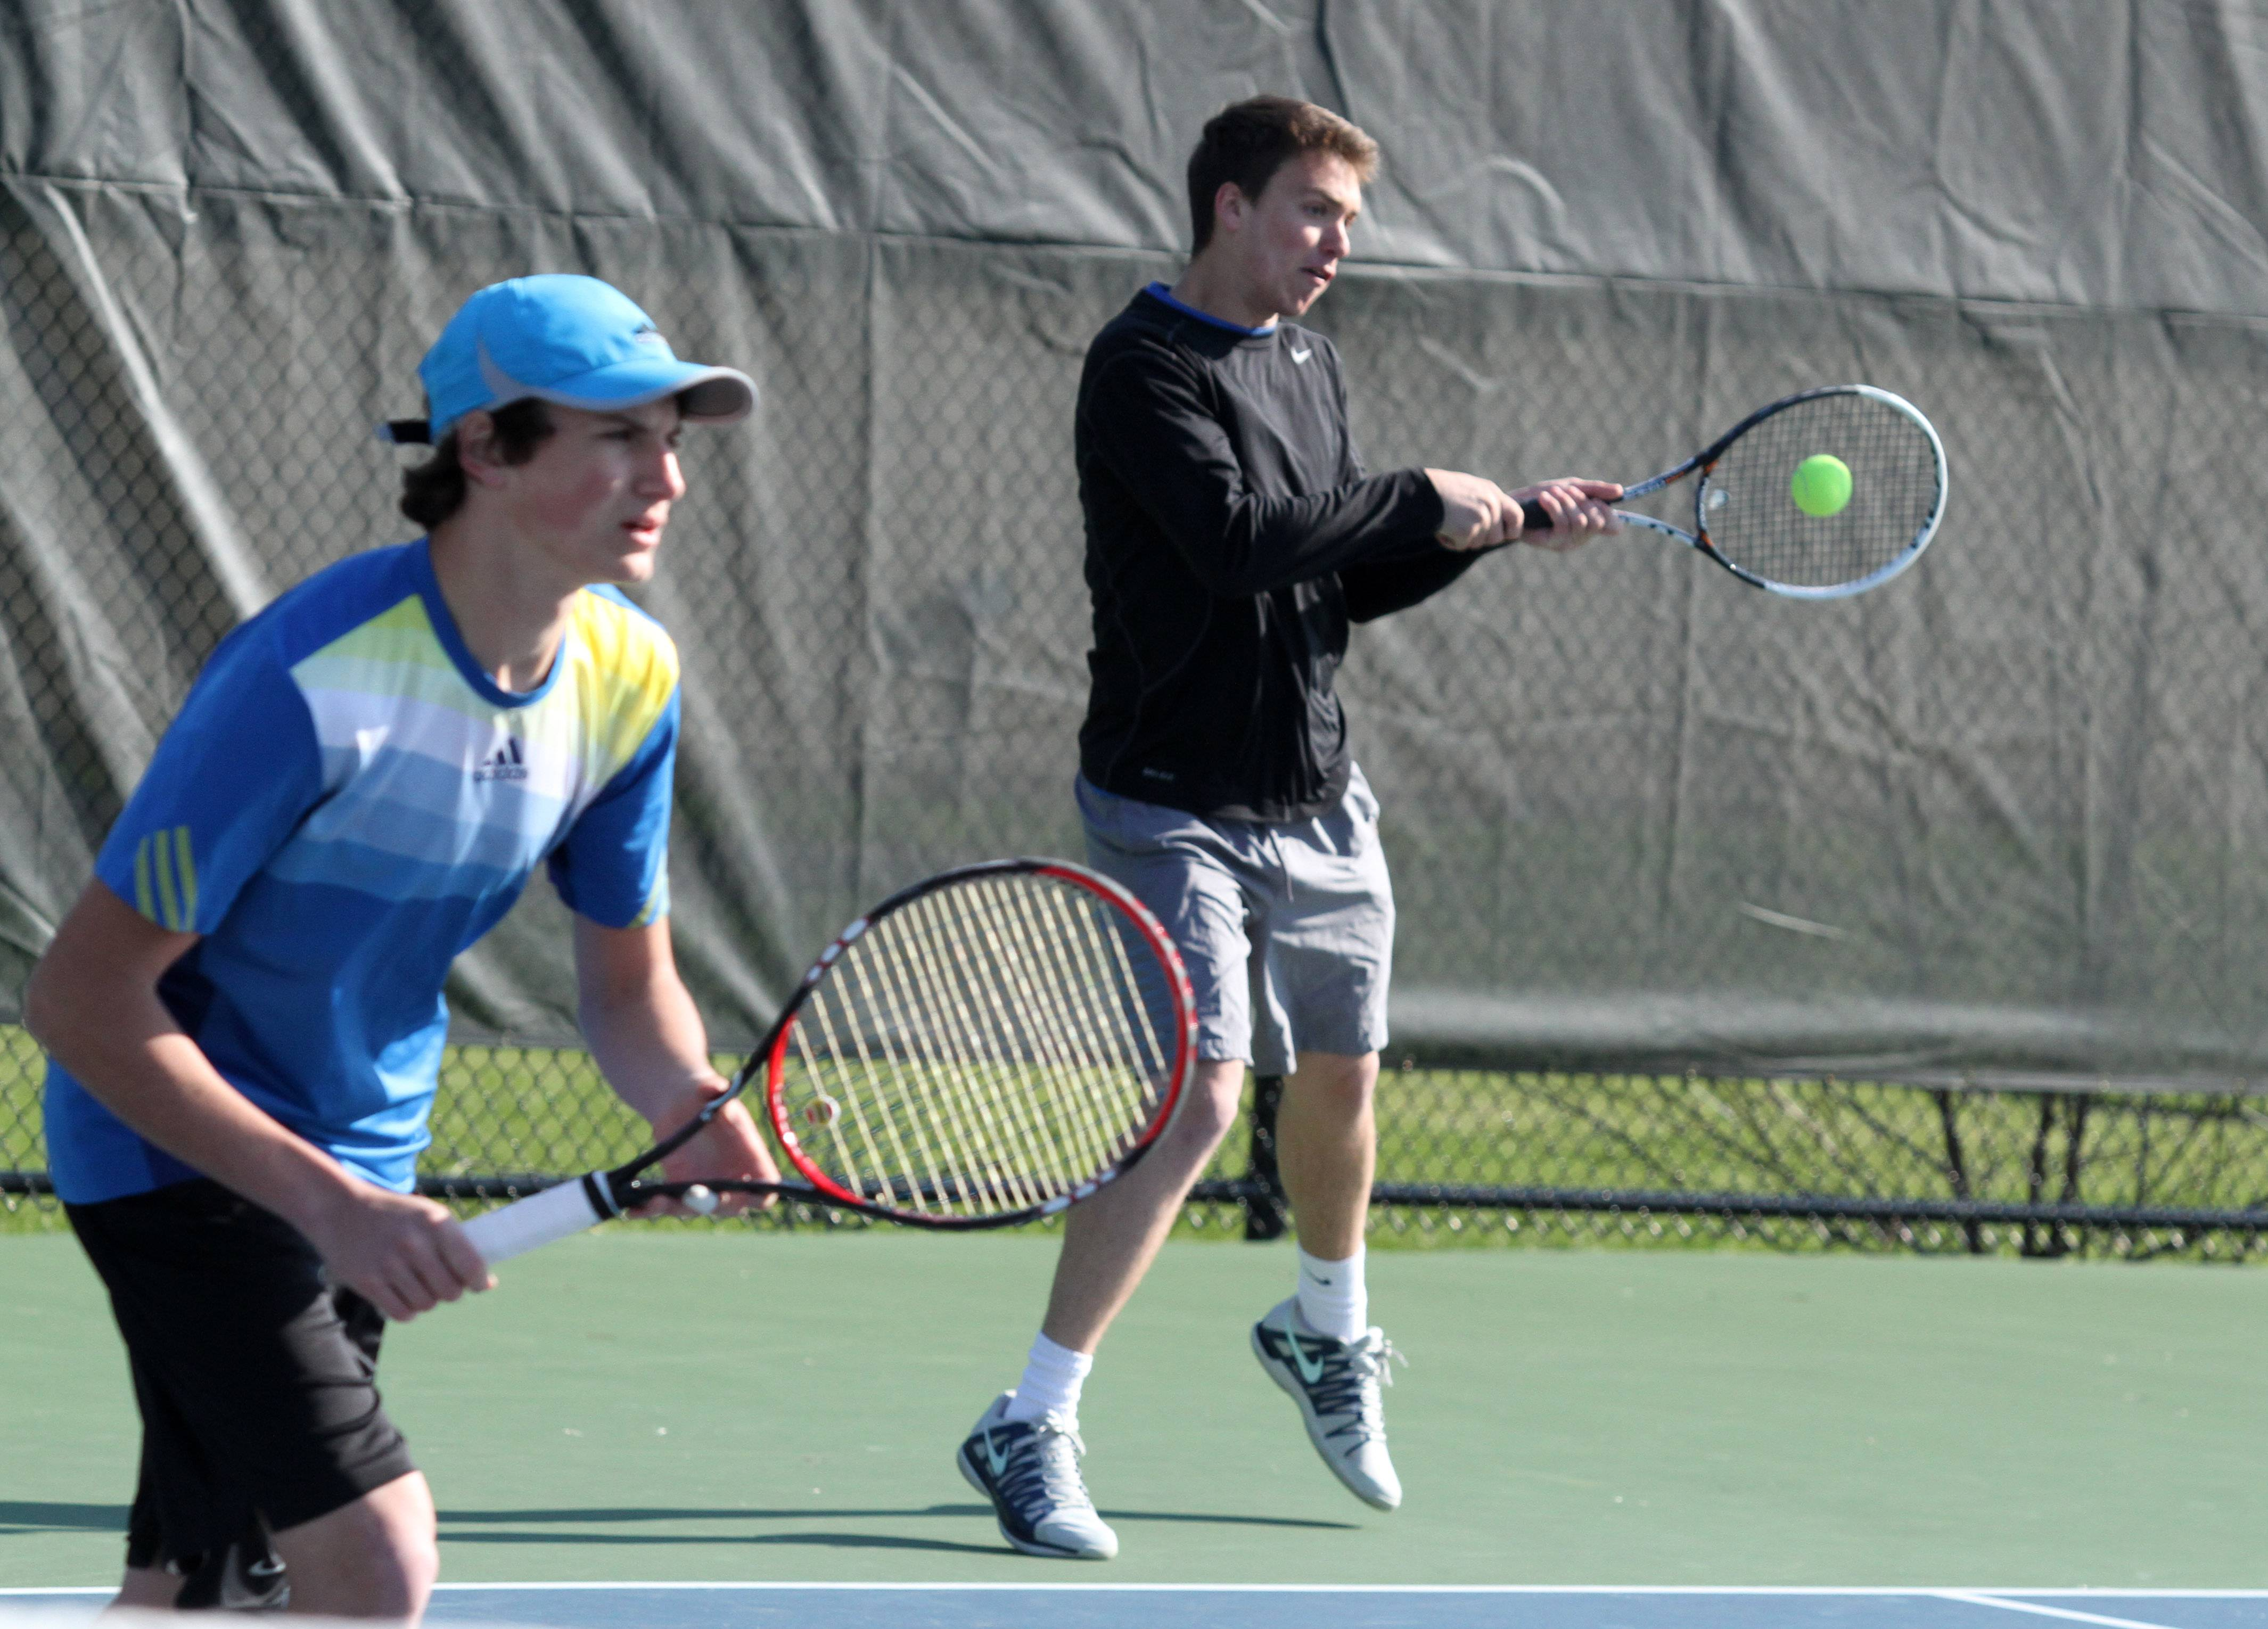 Warren's John Westerberg, serving, and doubles teammate Sam Gudeman compete against Barrington during Saturday's action at Forest View Racquet Club.